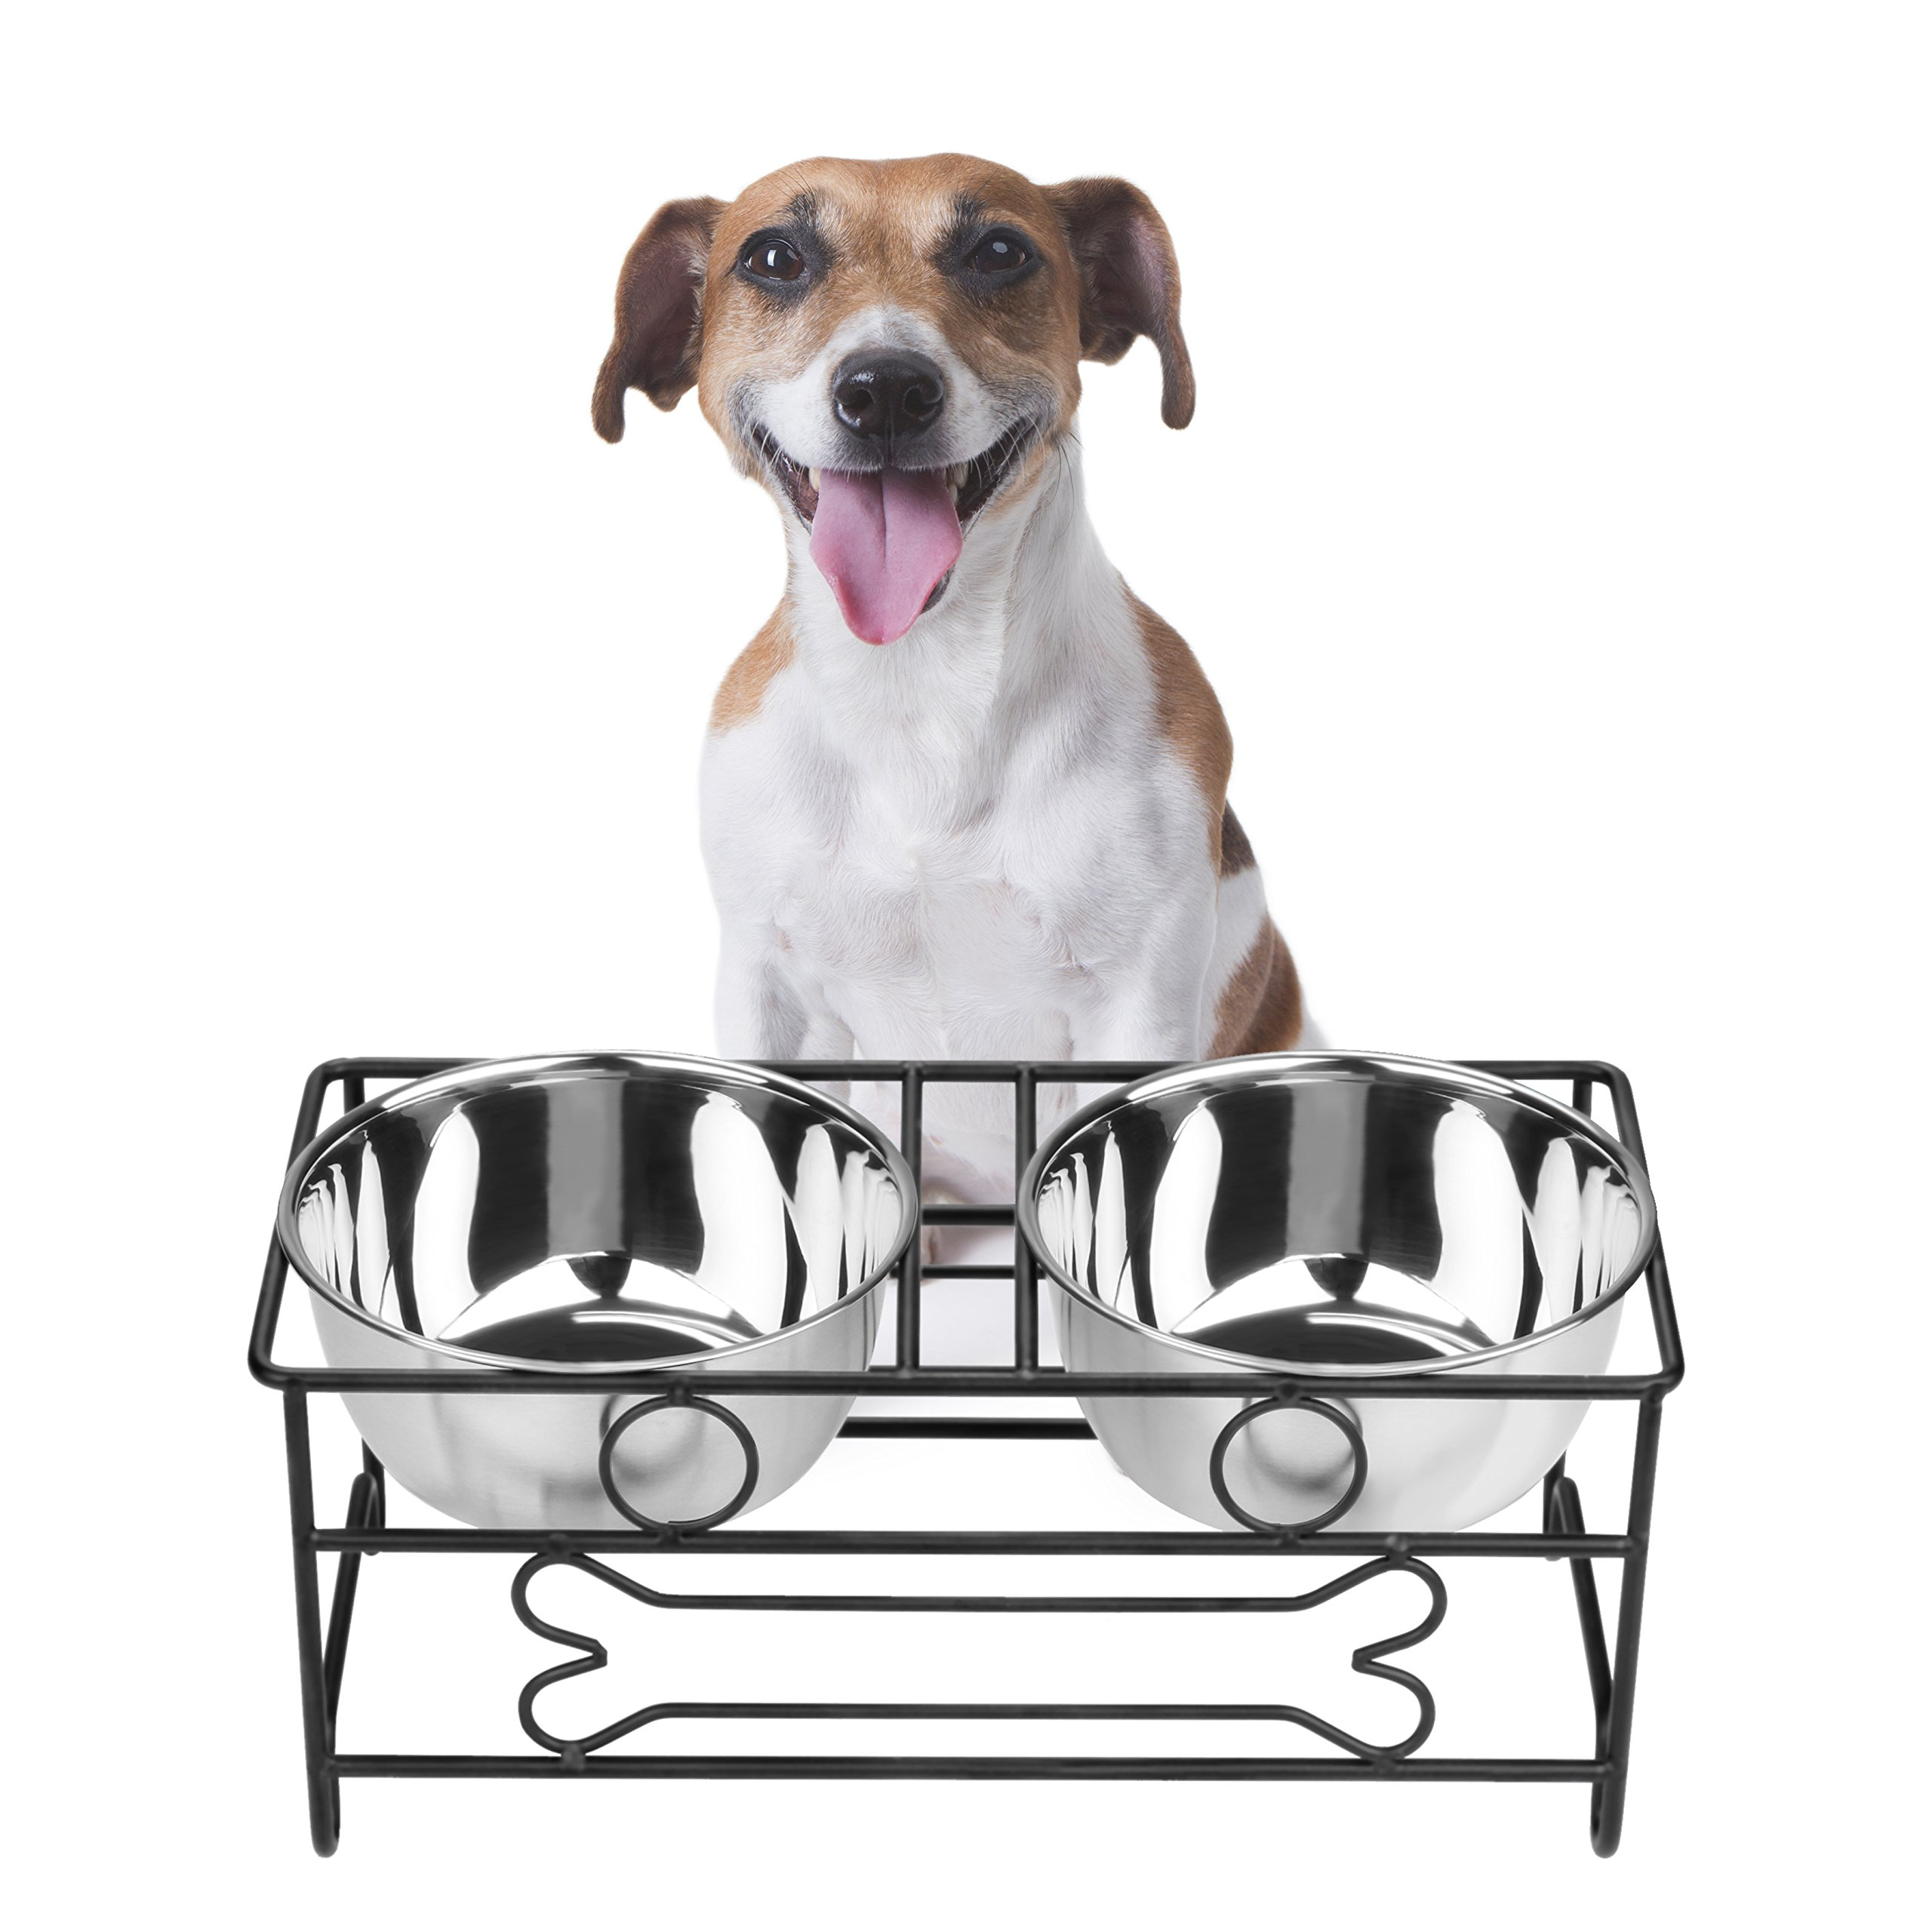 VIVIKO Bone Style Pet Feeder for Dog Cat, Stainless Steel Food and Water Bowls with Iron Stand (Medium) by VIVIKO